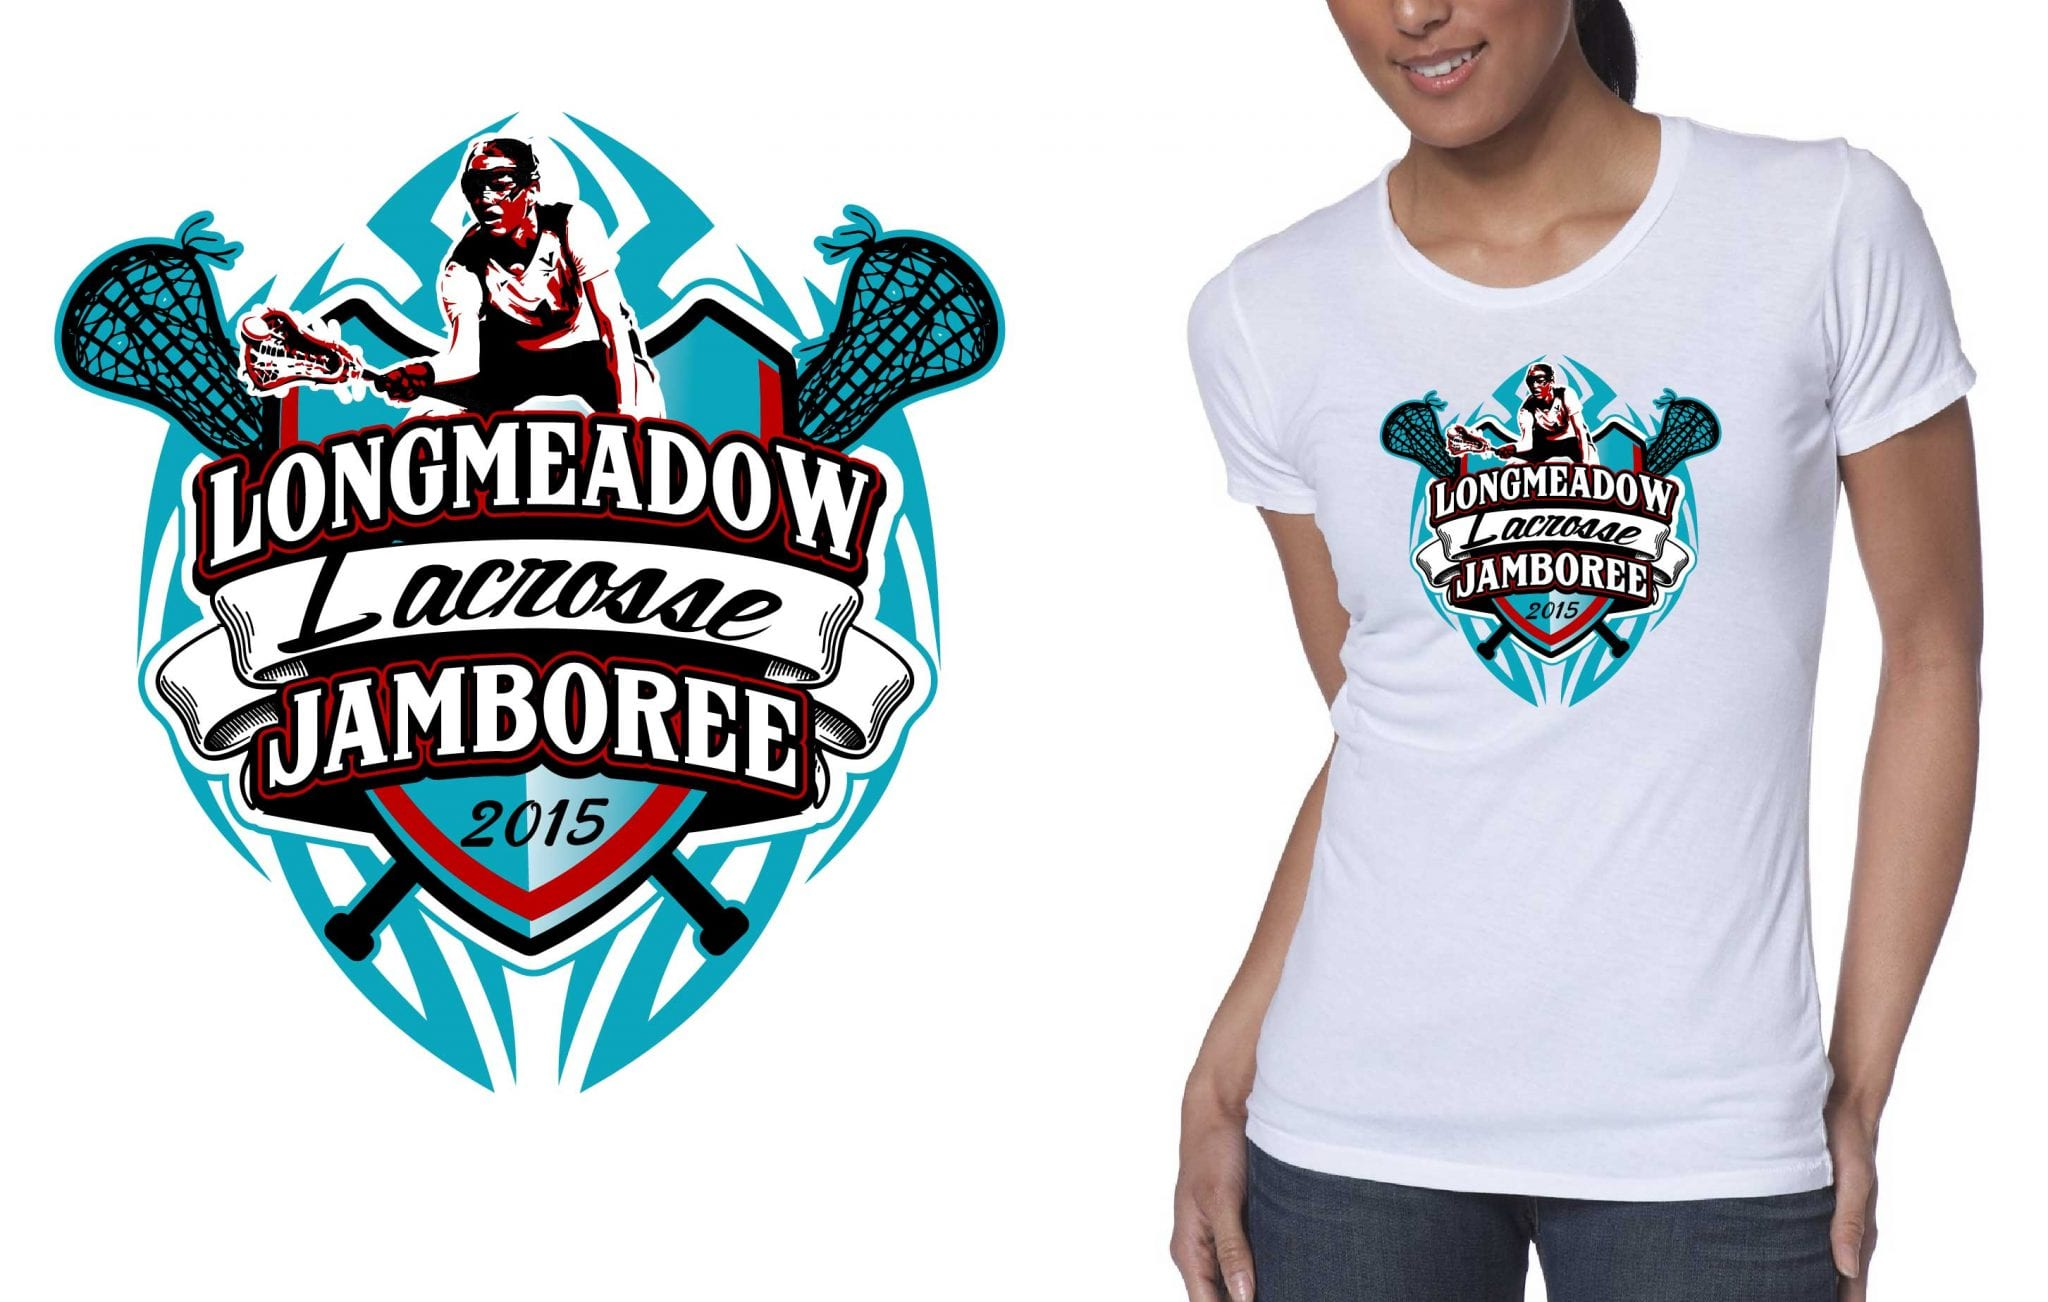 2015 longmeadow lacrosse jamboree best t shirt logo design